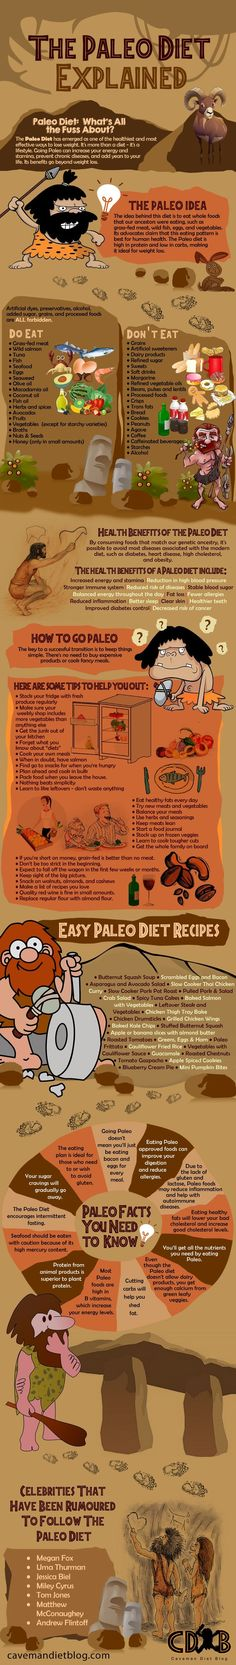 The Paleo Diet Explained - Fantastic infographic full of information about the… #weightlossrecipes